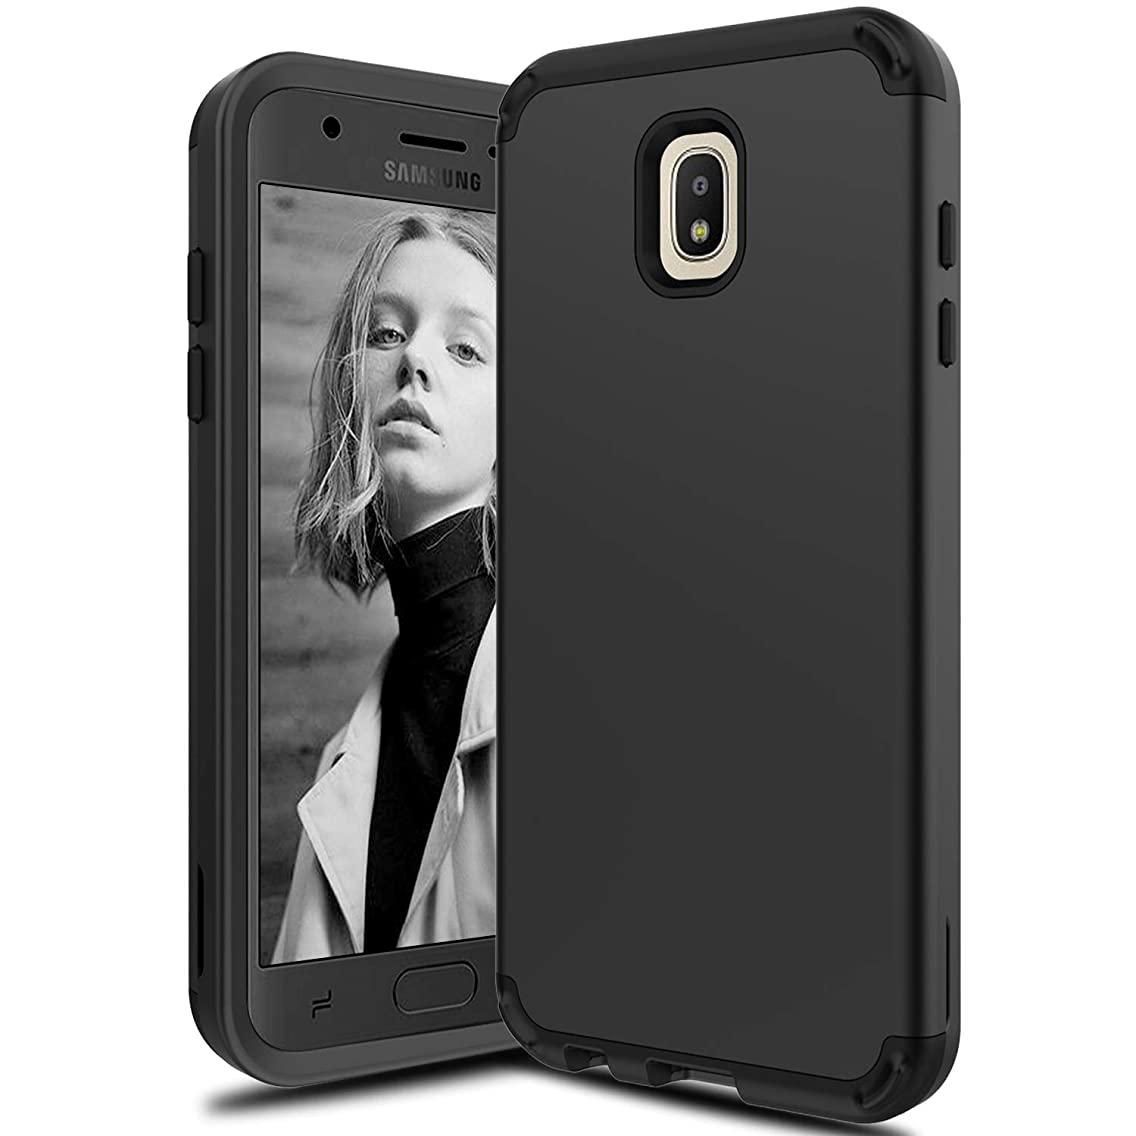 LEAPTECH Hybrid Galaxy J7 2018 Case, Galaxy J7 Refine Case, Galaxy J7 Star Case, 3 in 1 Heavy Duty Shockproof Protective Armor Phone Case Cover Compatible with Galaxy J7 Aero/J7 Aura (Black)